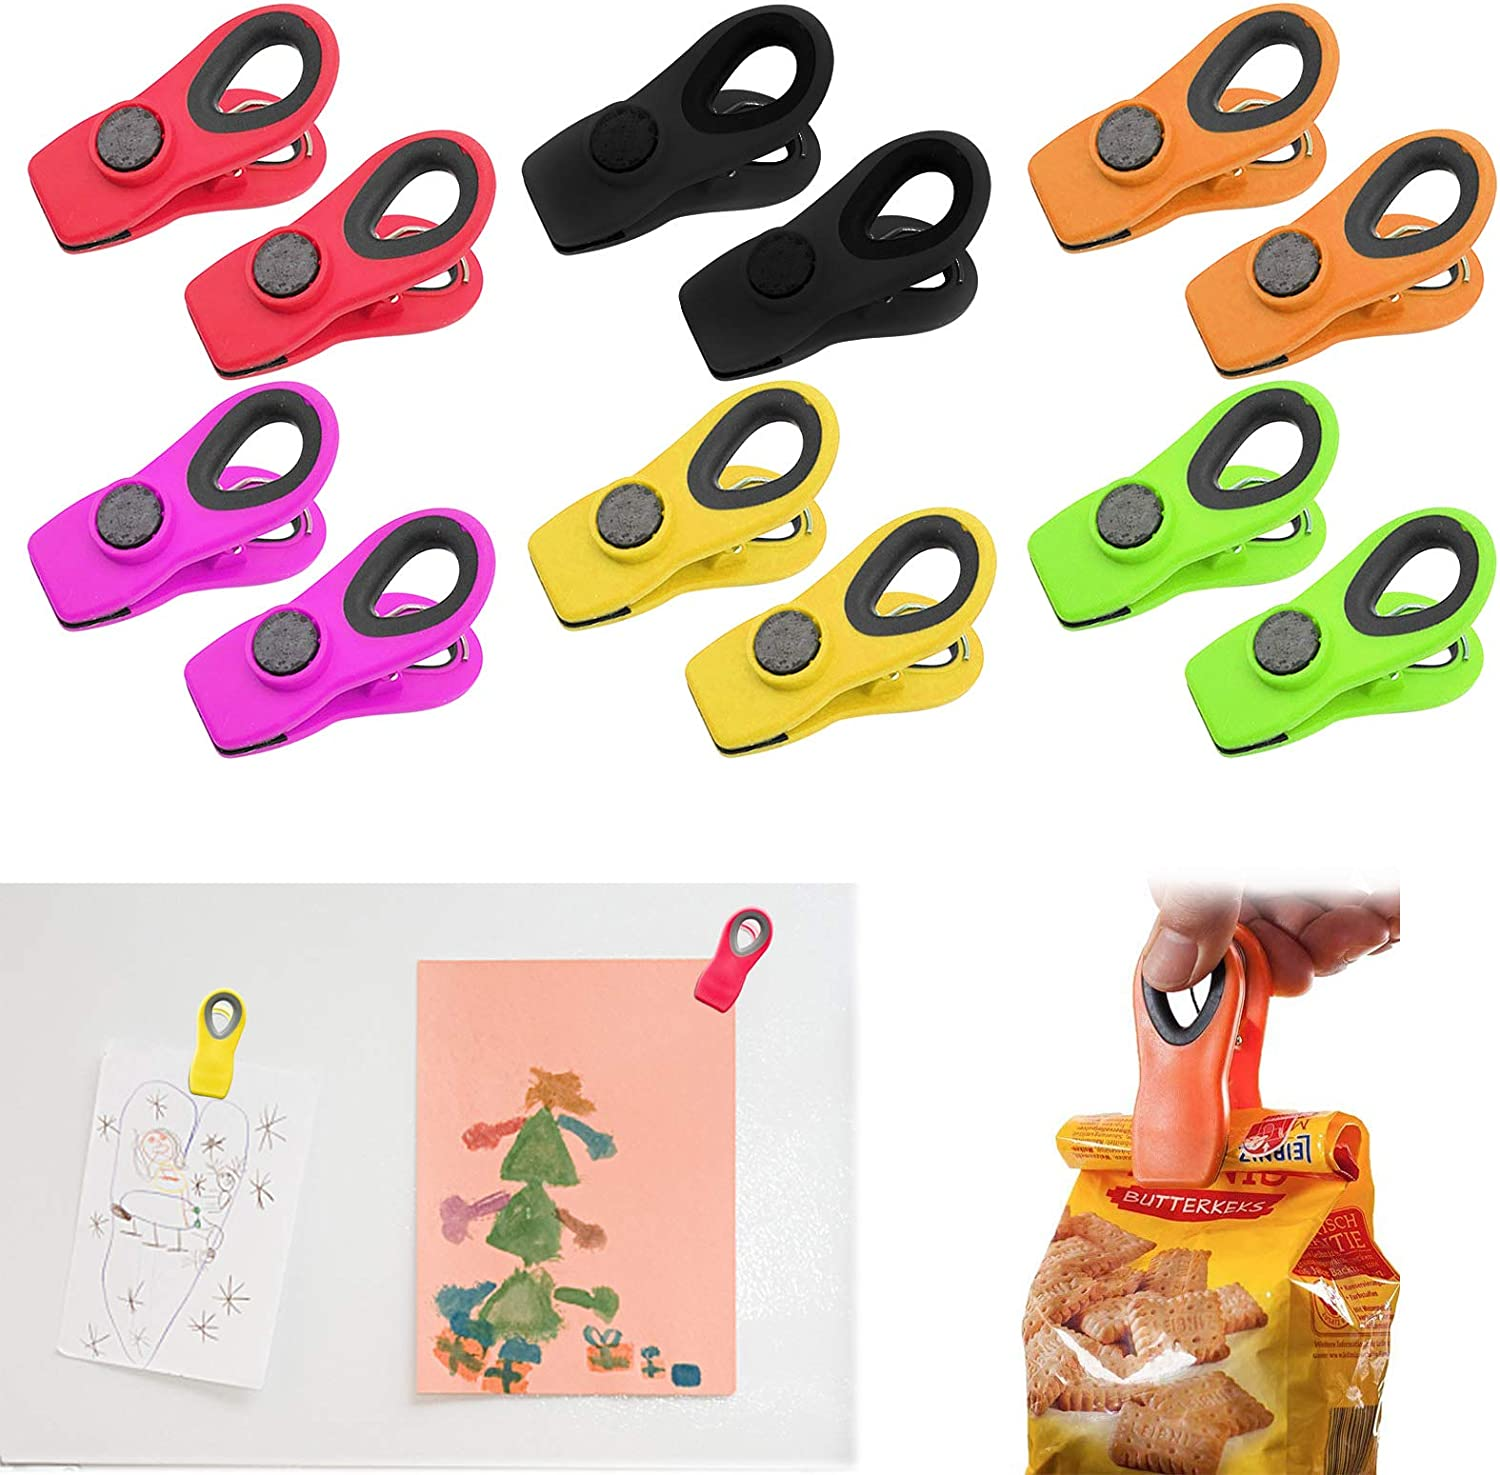 12 PCS Clips for Food Packages, Magnetic Chip Clips Bag Clips Food Clips, Chip Clips Magnetic, Multicolored Chip Clips for Food Storage Home Kitchen Office School Supplies